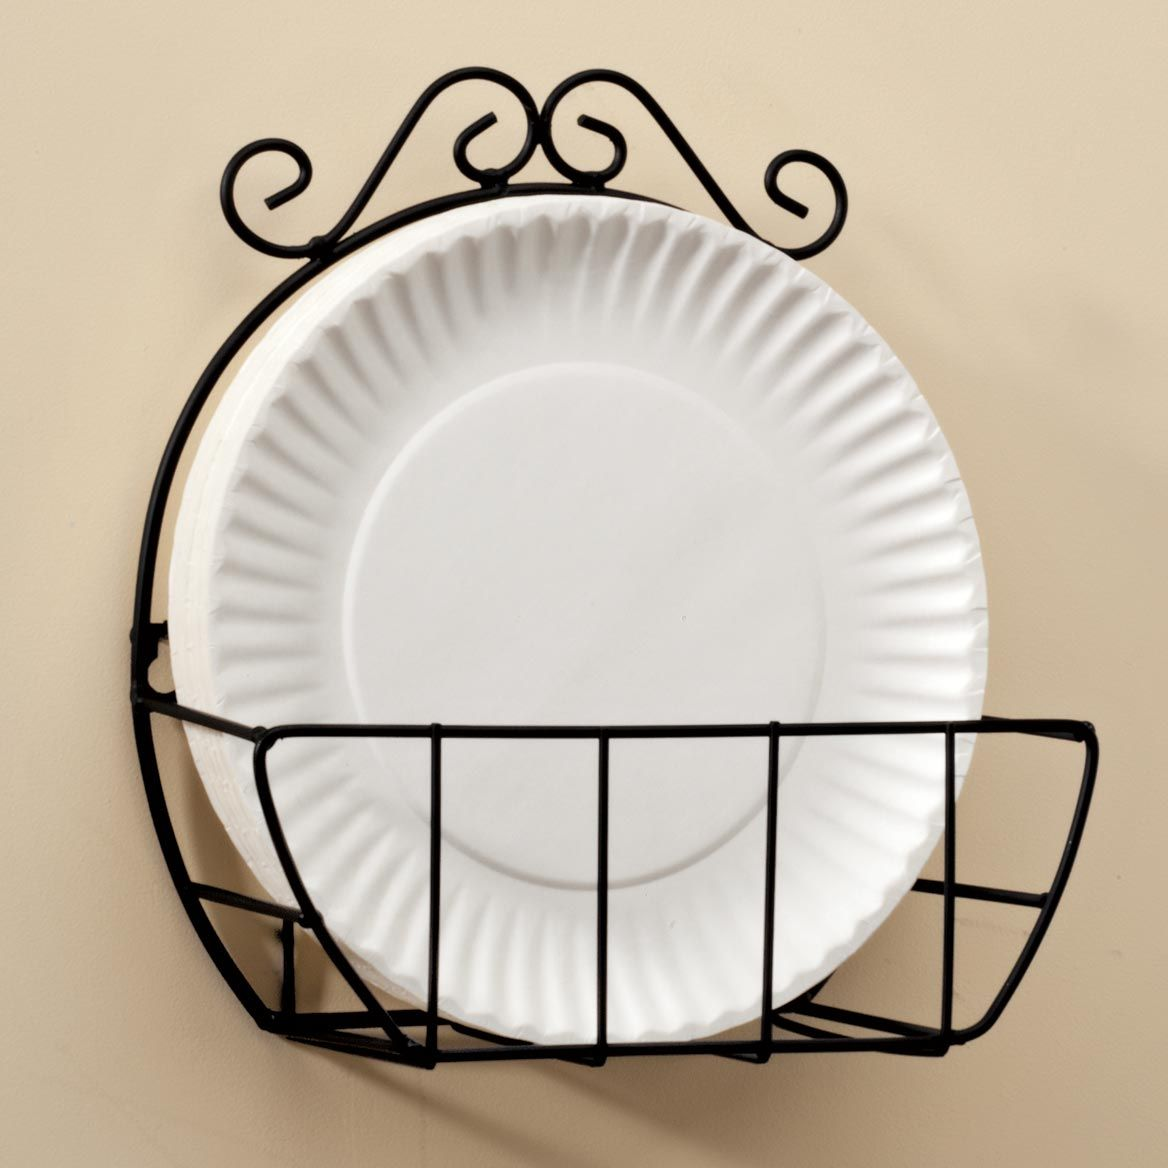 Miles Kimball Wire Paper Plate Holder Lends Style And Convenience To You Kitchen Keeps Paper Plates Organized Paper Plate Holders Plate Storage Plates On Wall